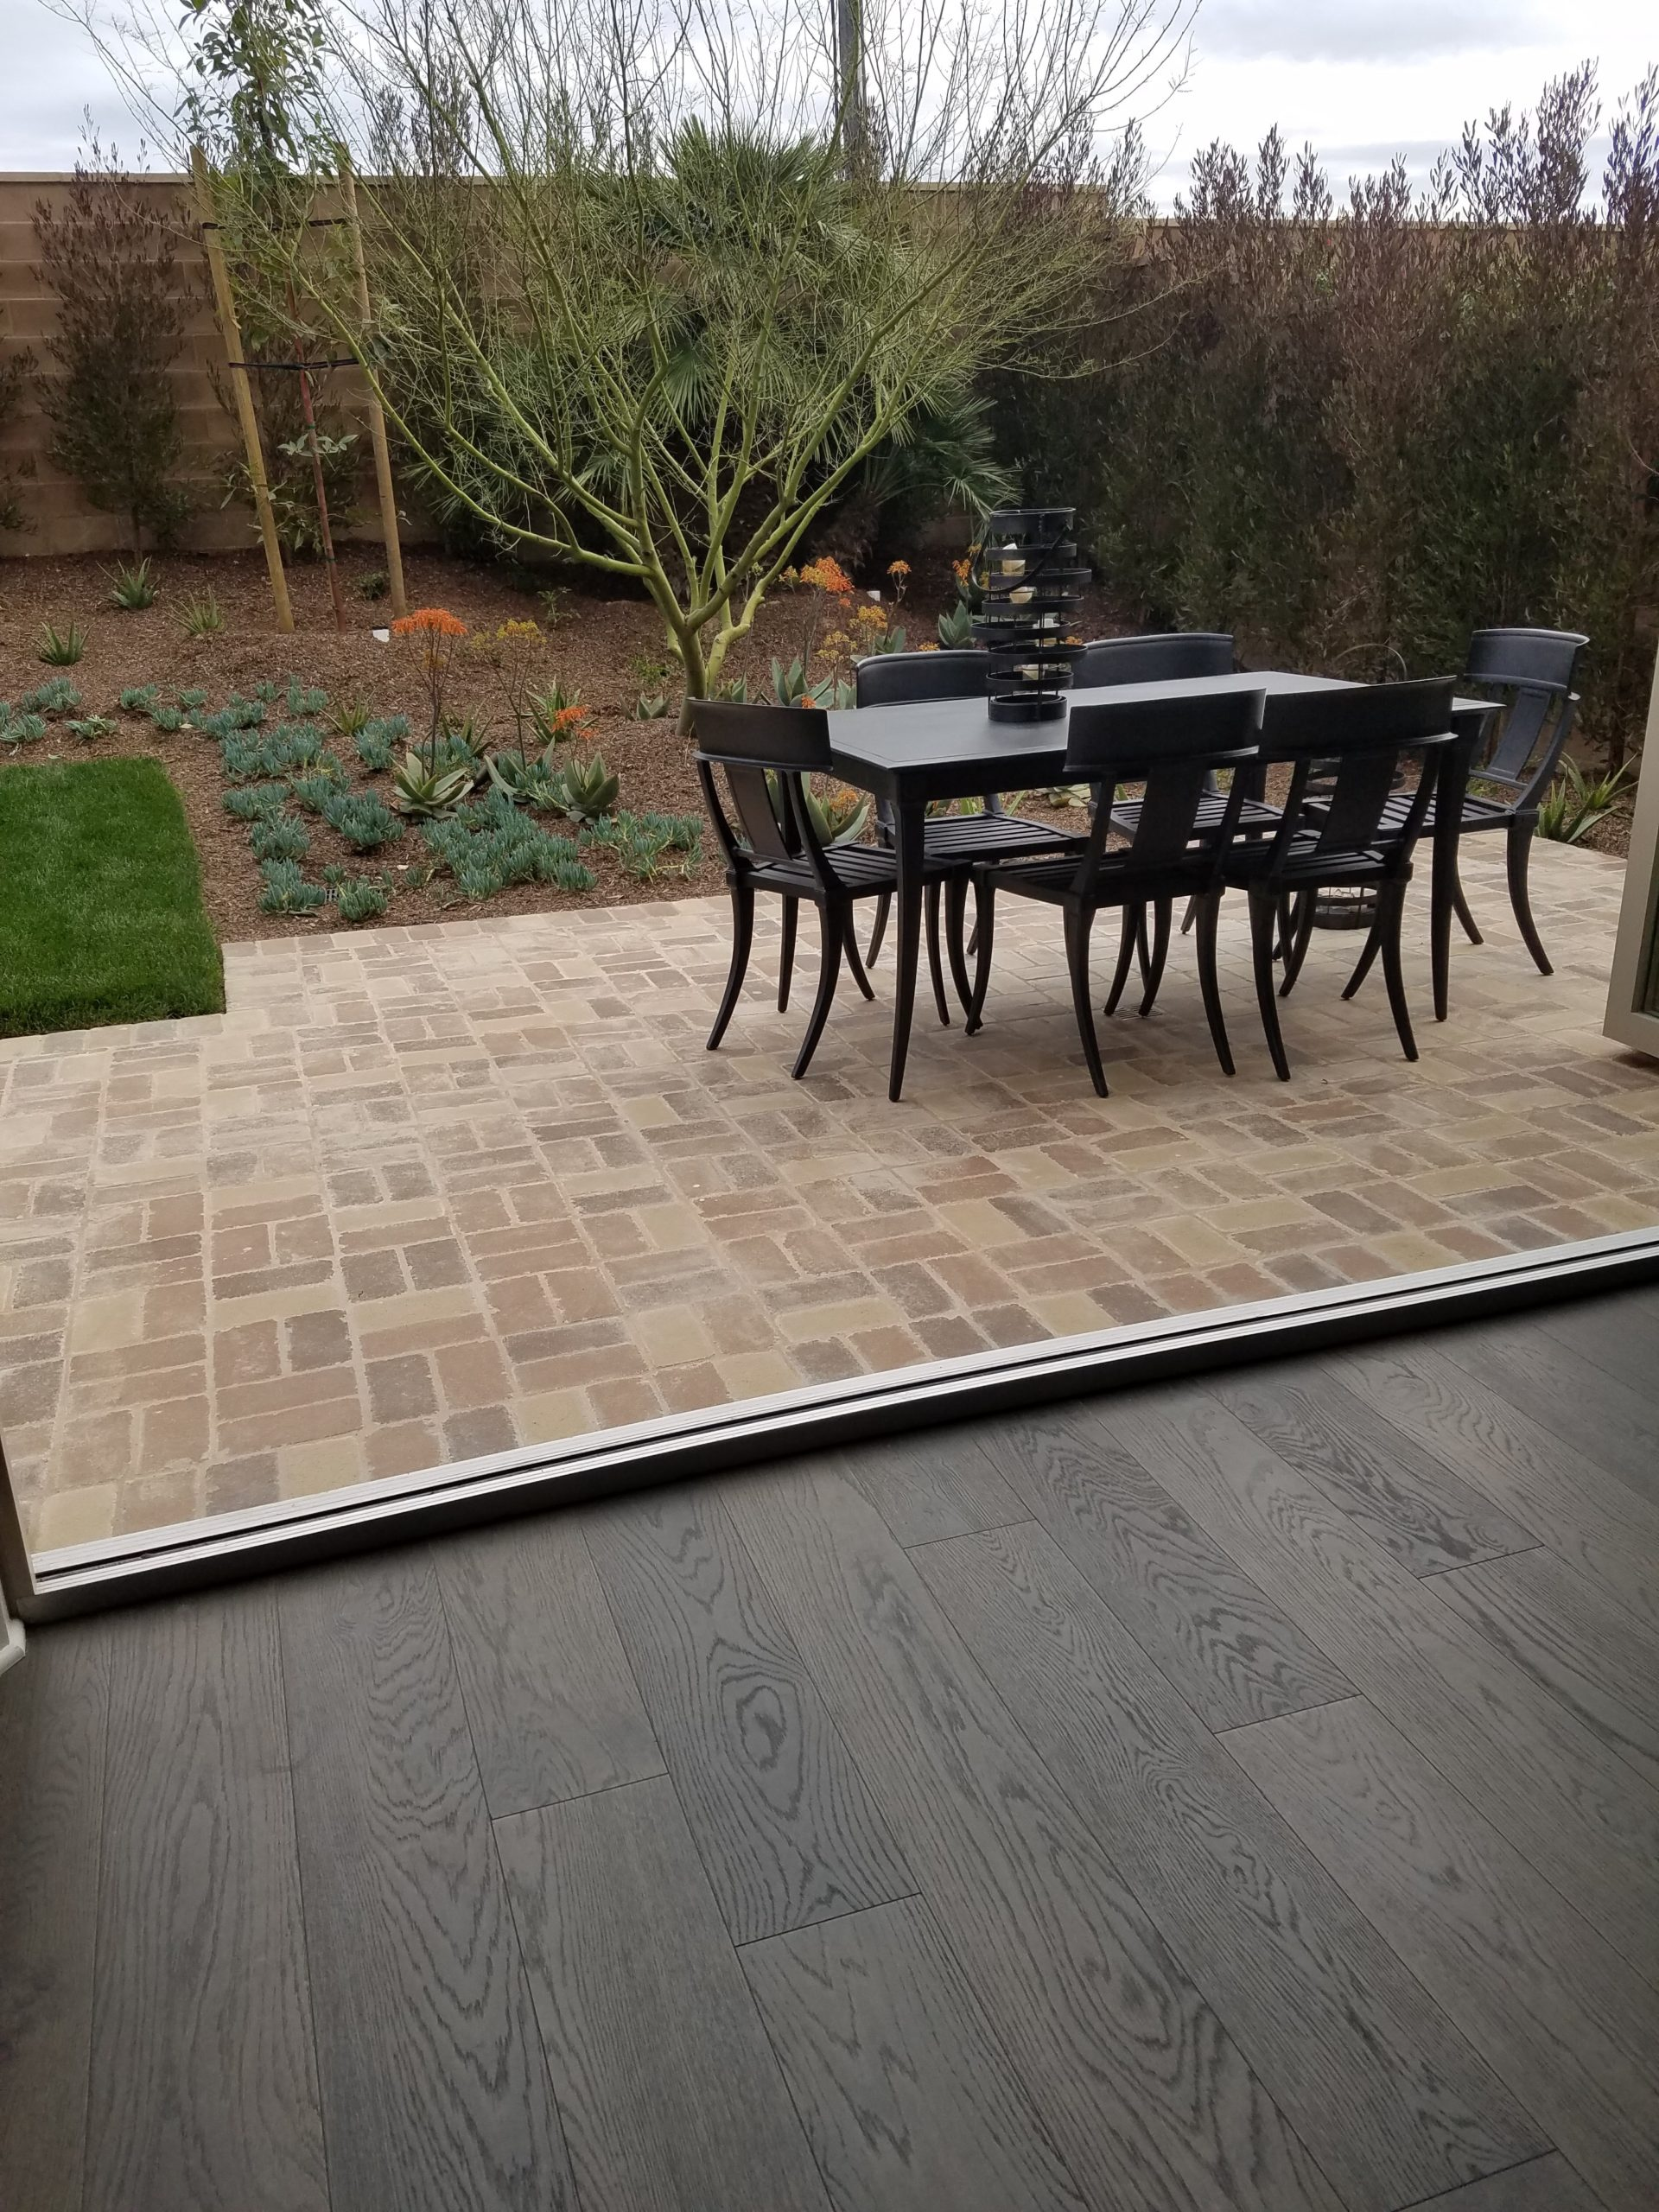 52-star-construction-pavers-outdoor